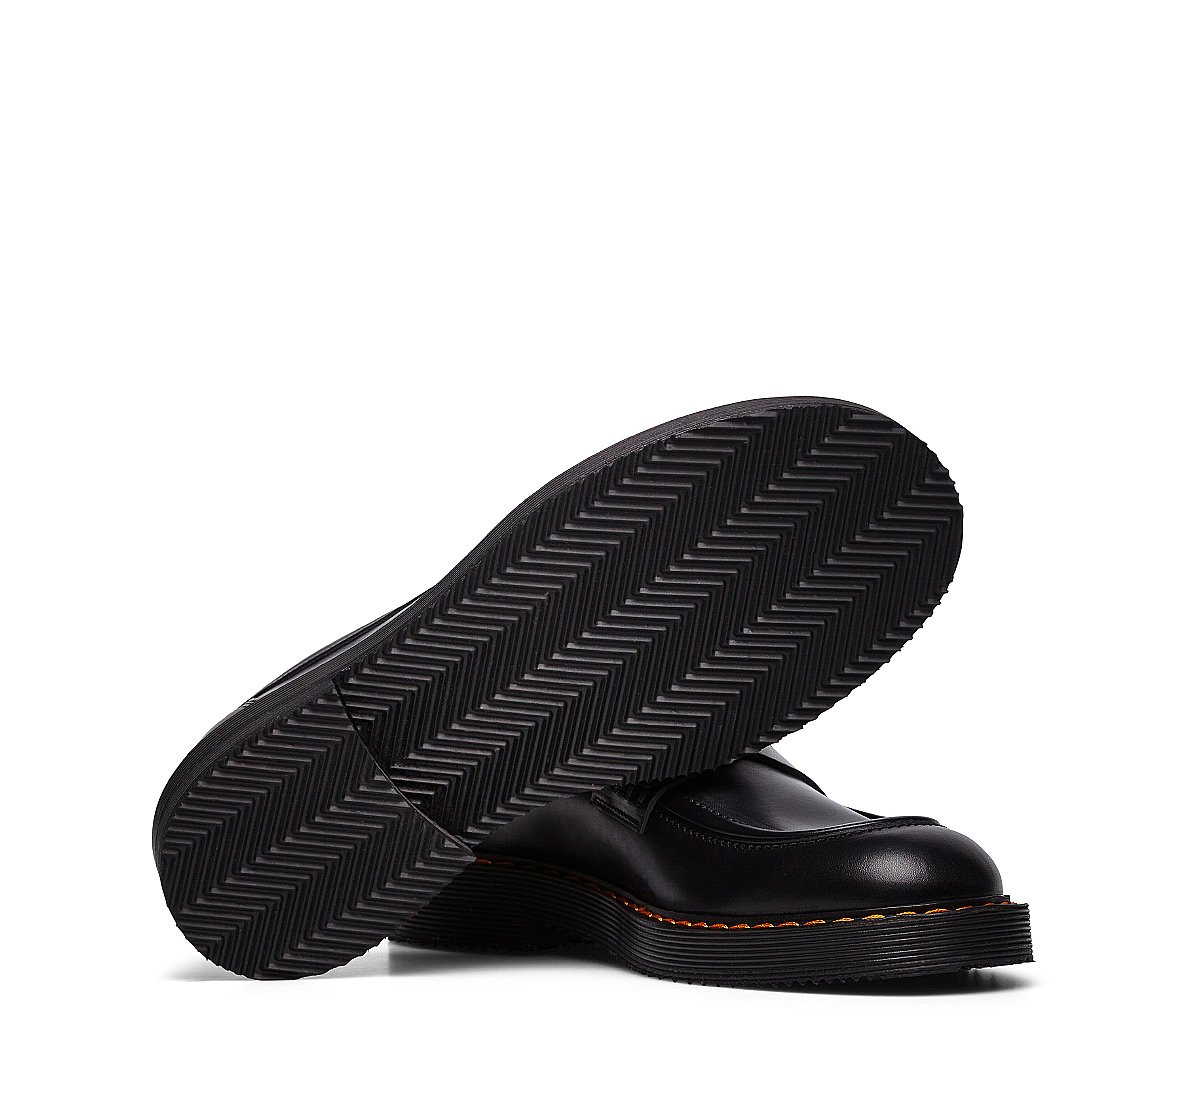 Barracuda classic moccasins in nappa leather